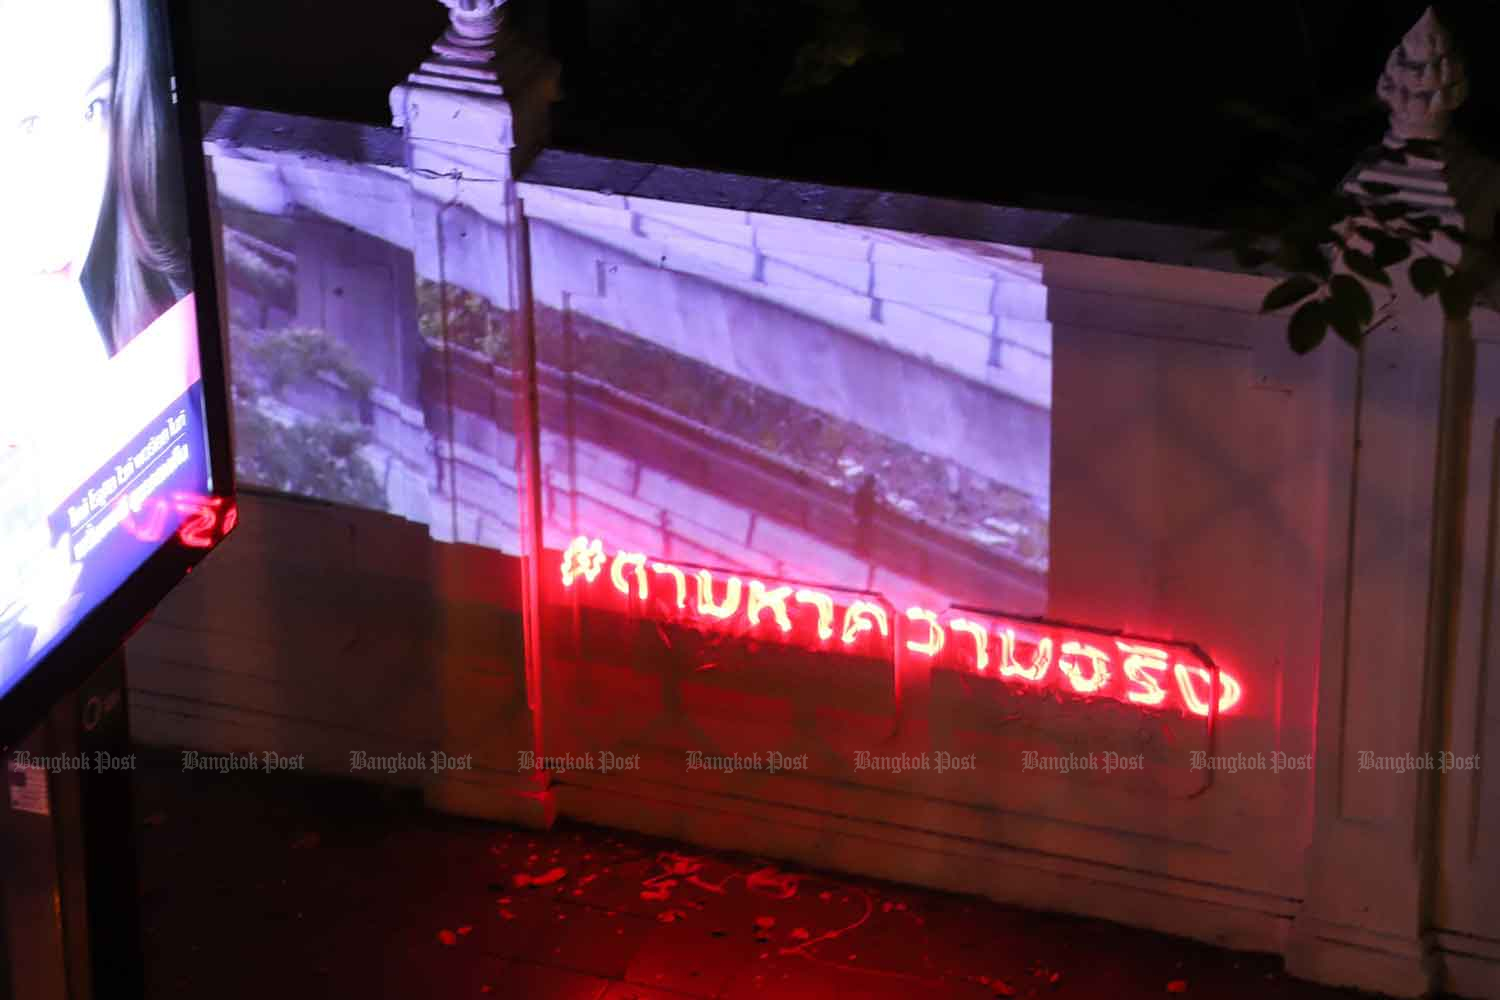 Thanathorn's group warned over laser messages